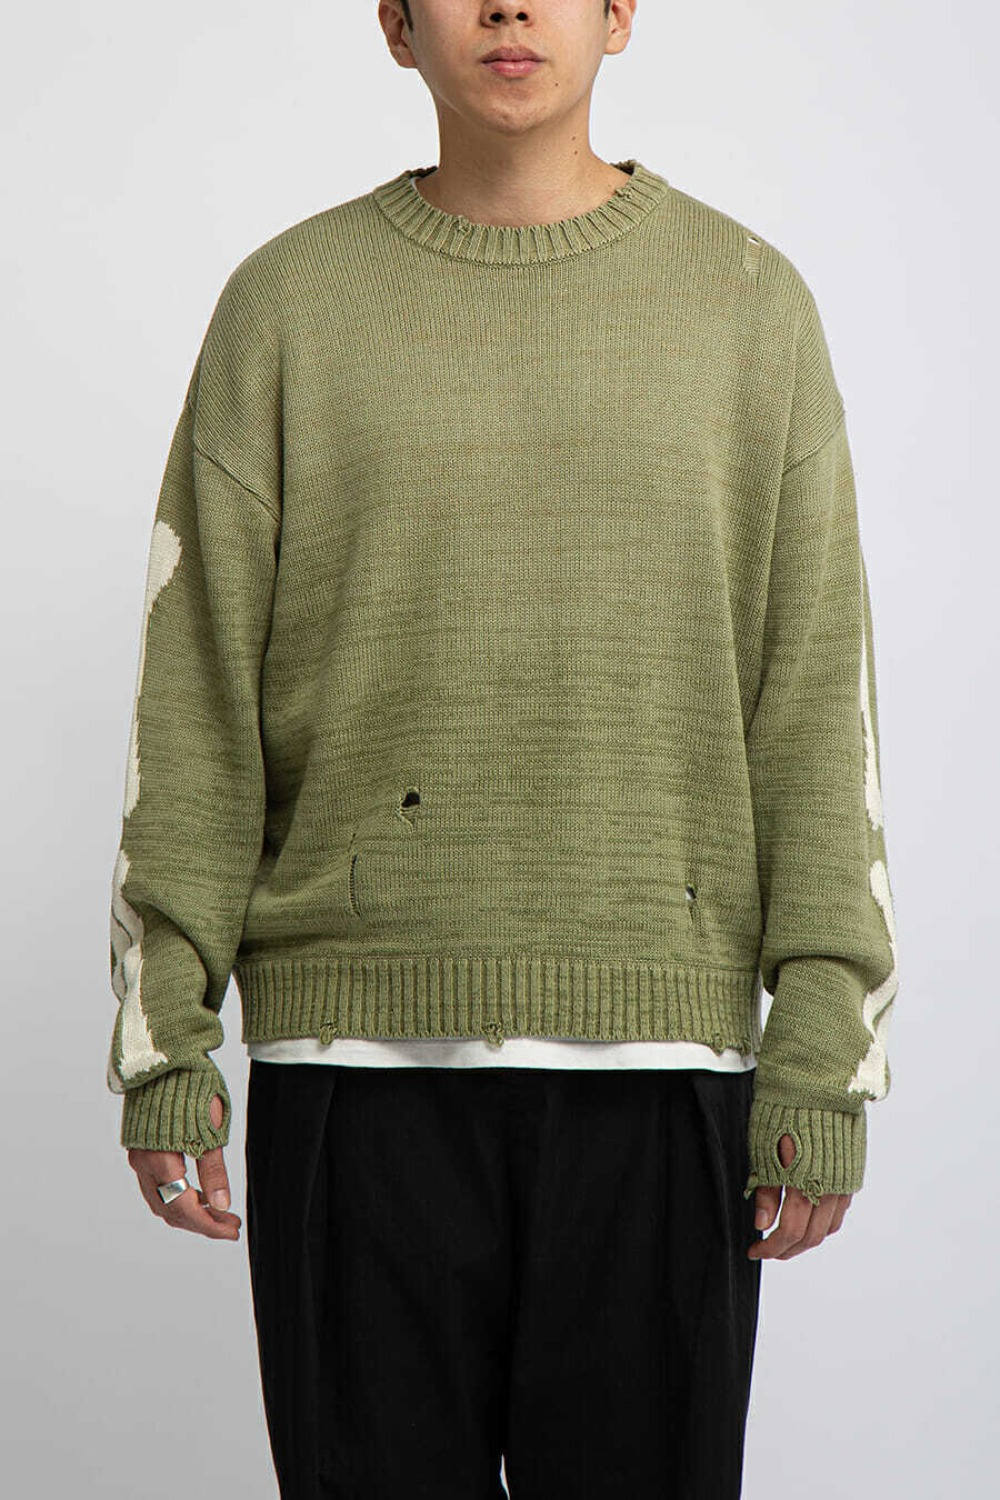 5G COTTON KNIT BONE CREW SWEATER KHAKI